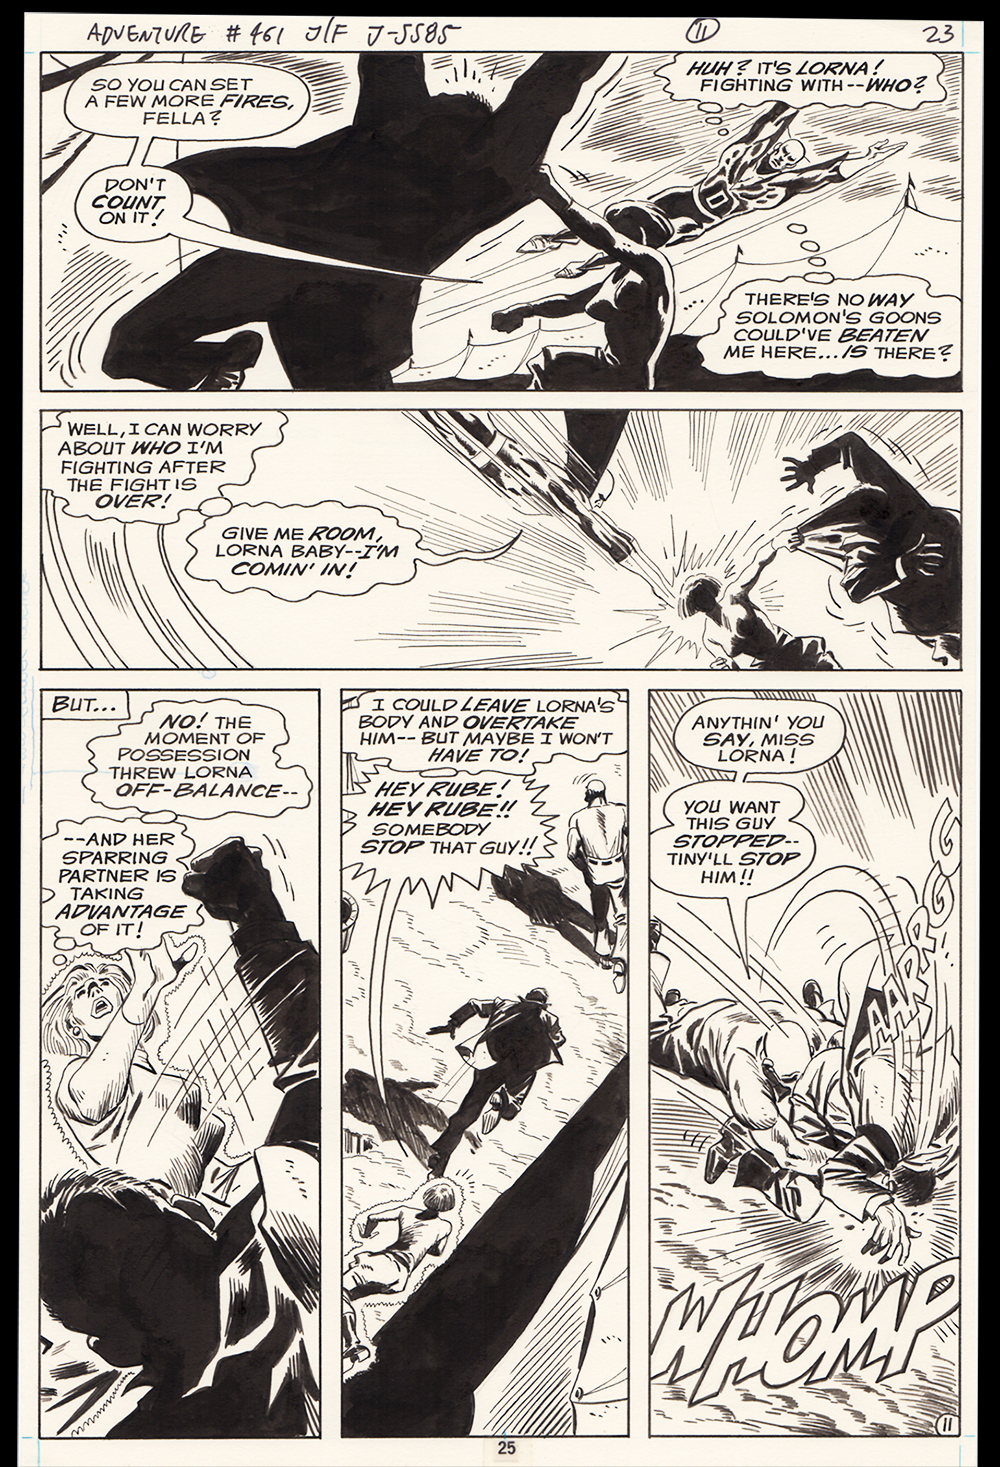 Image: Adventure Comics #461 page 11 art by Jim Aparo